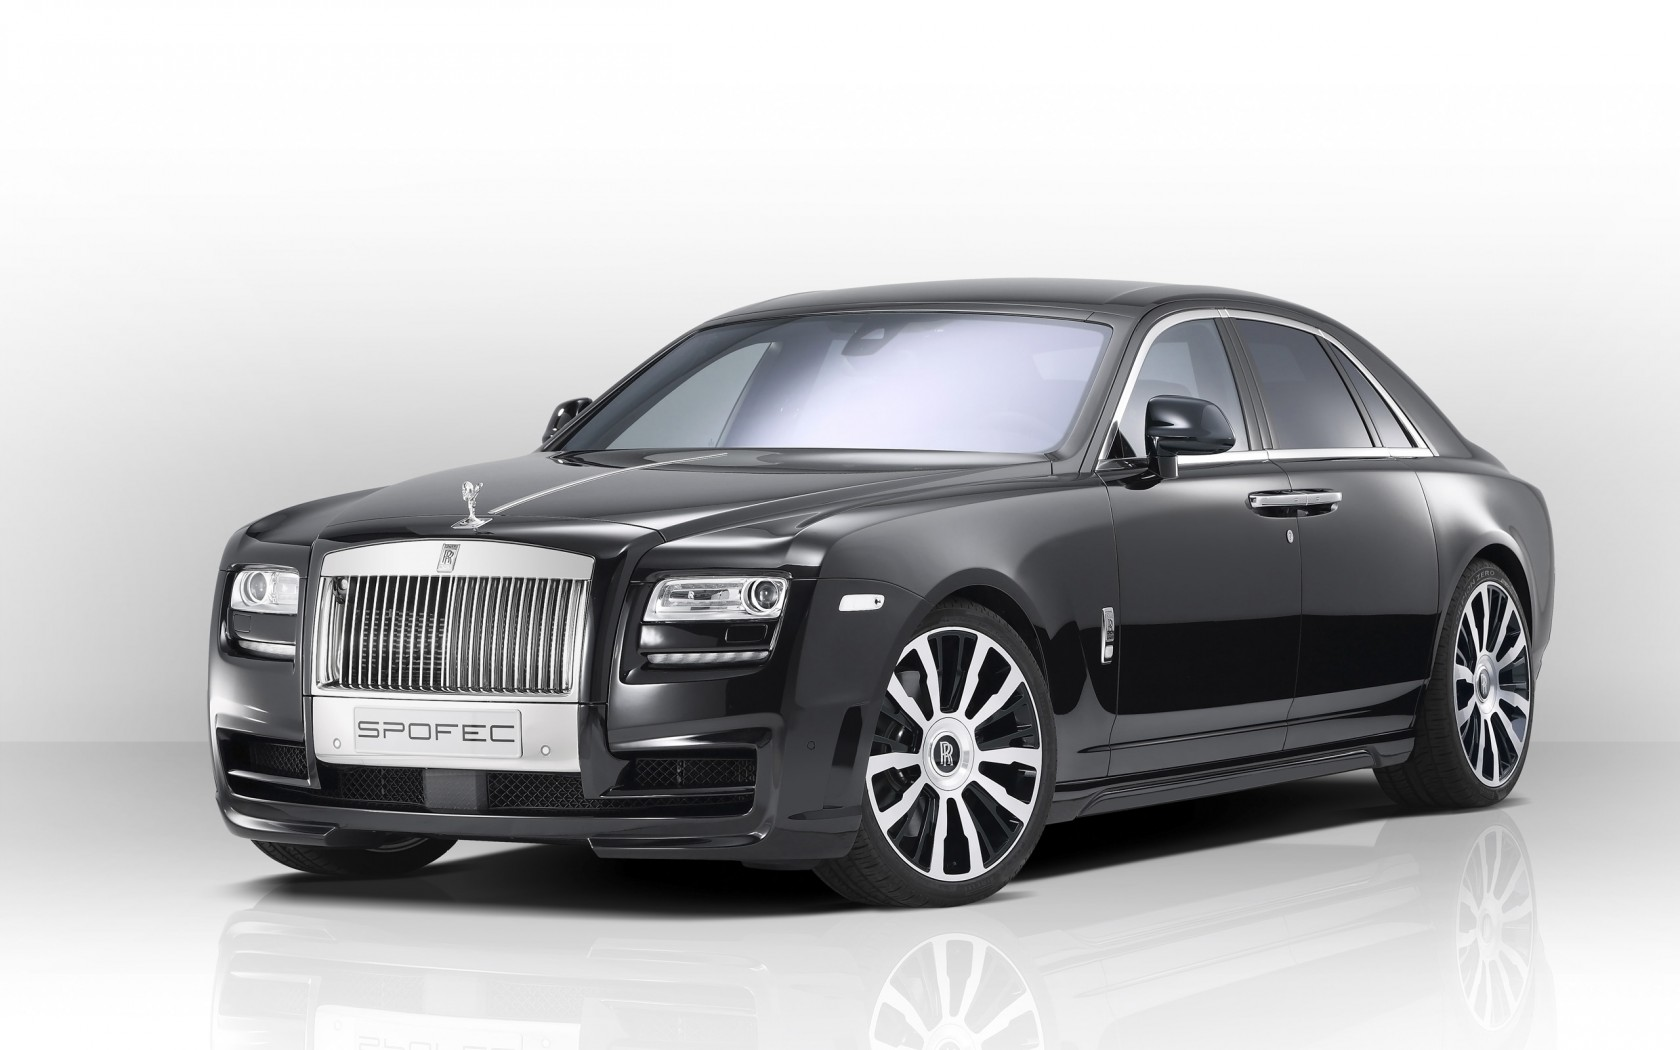 2014 spofec rolls royce ghost wallpaper hd car